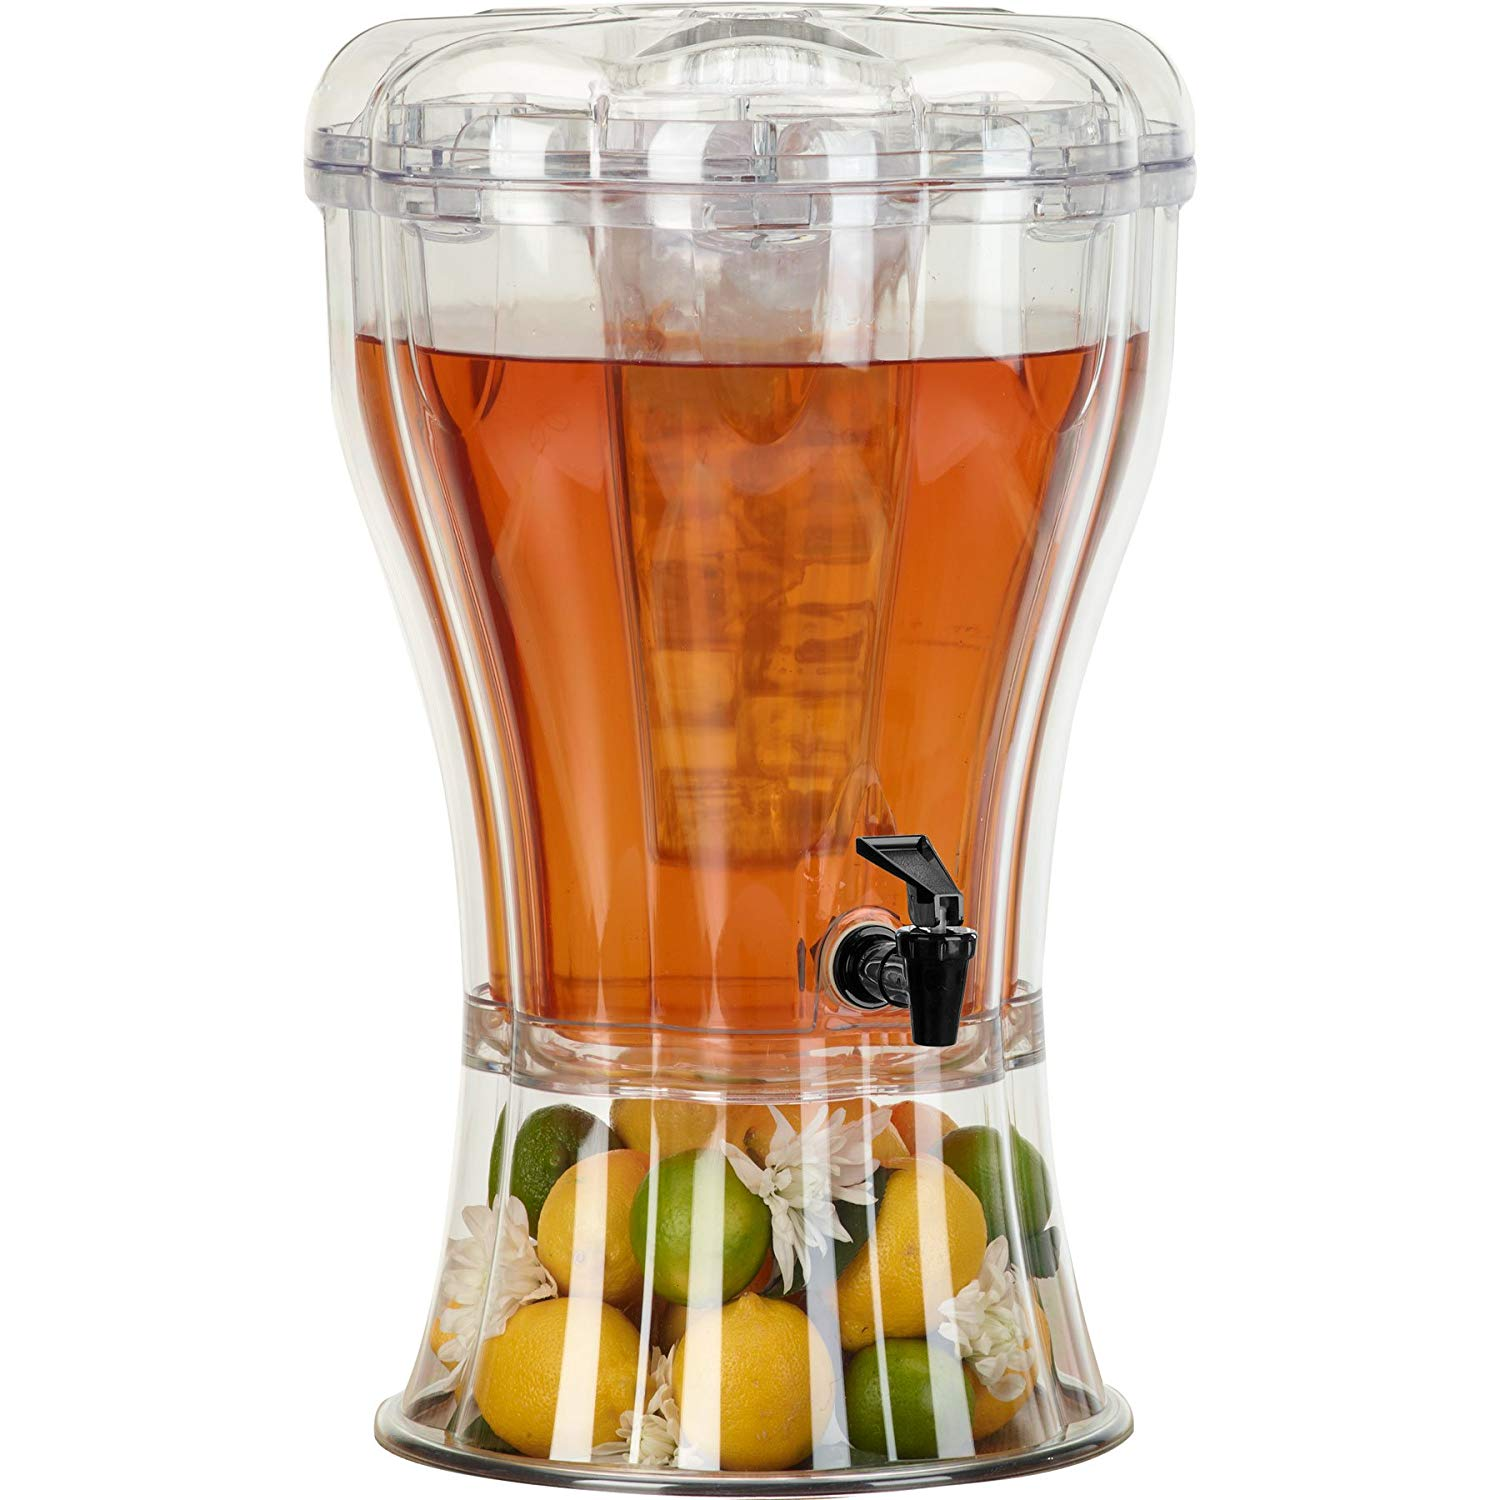 3 Gallon Insulated Beverage Dispenser - 3 available | Rent for $5 each